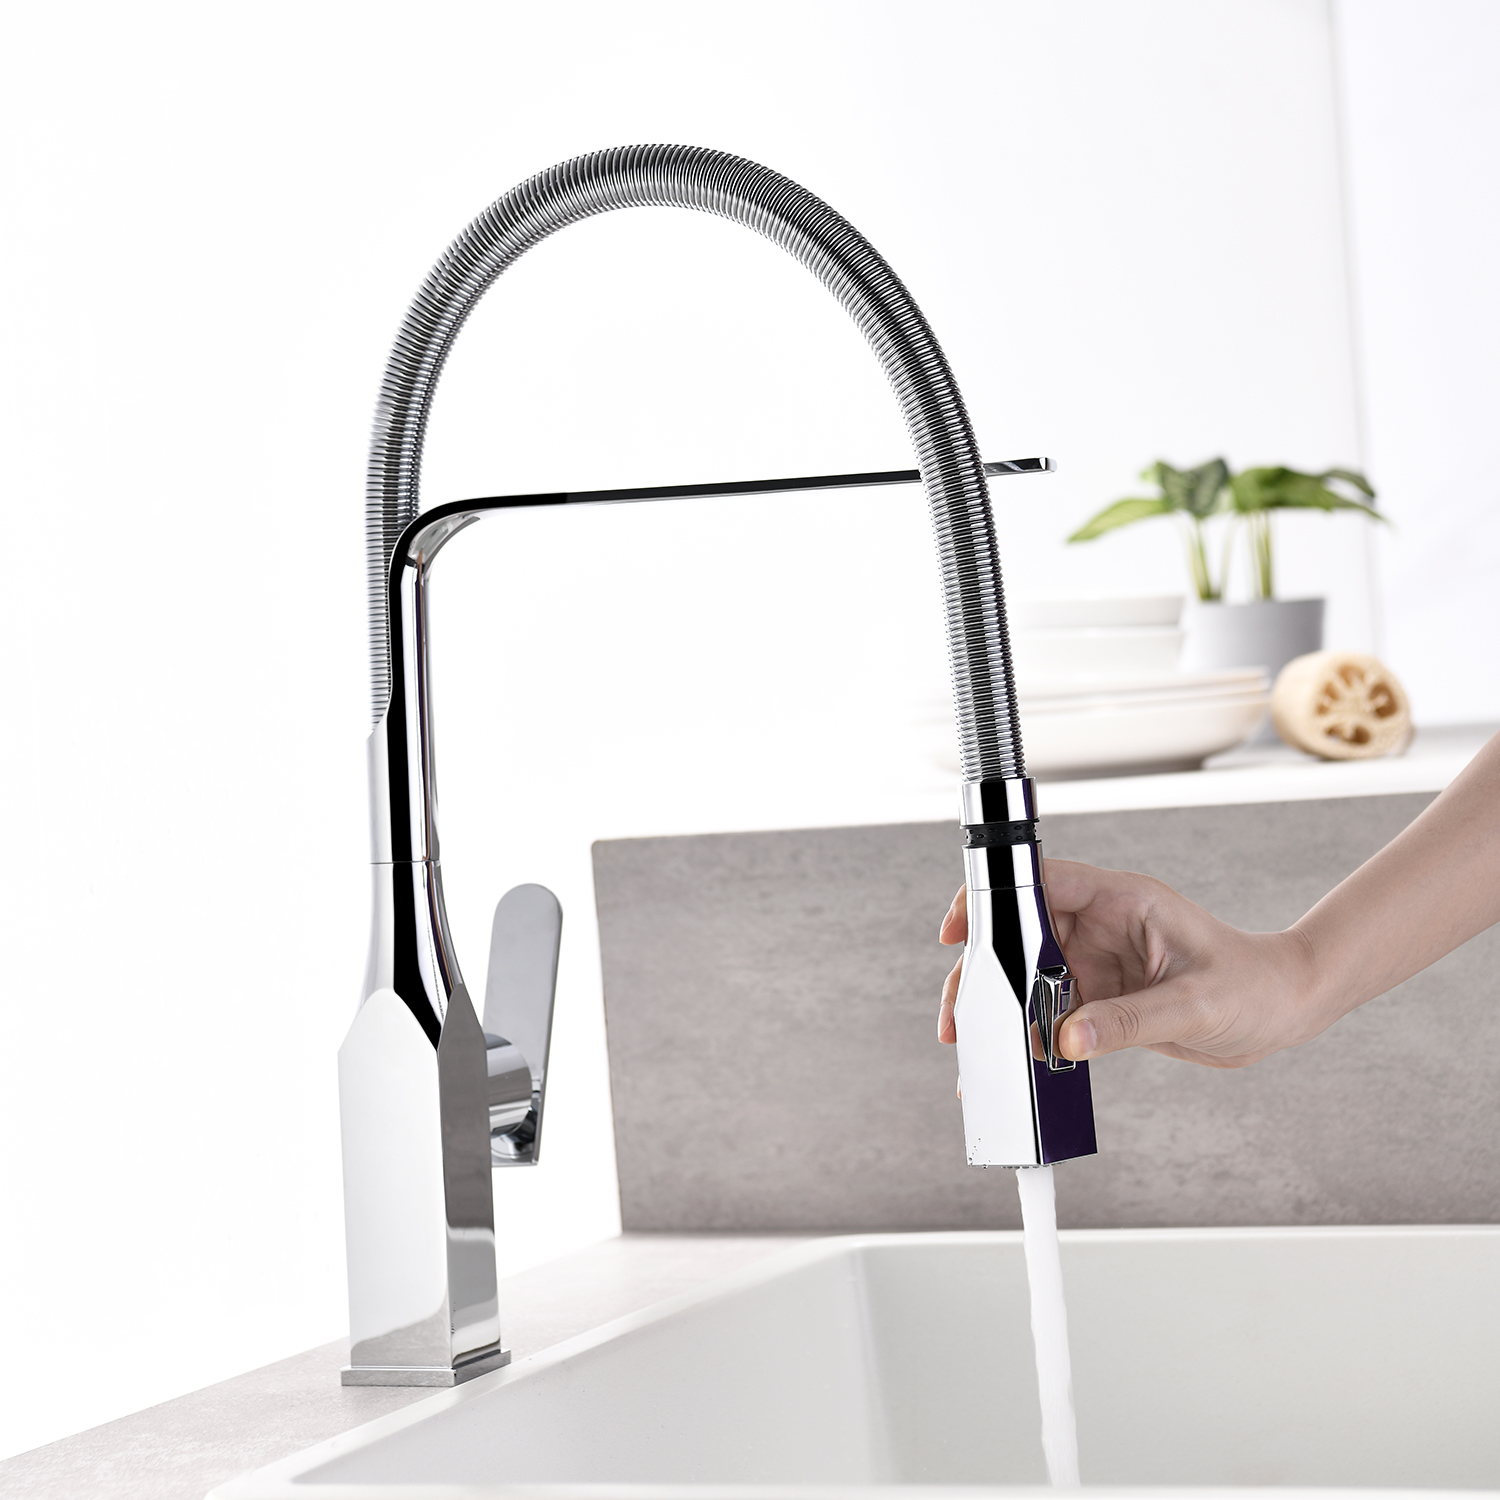 Permalink to Kitchen Faucet Single Lever Bathroom Faucets with 2 Spray Modes 360 Degree Swivel Basin Sink Faucet Kitchen Mixer Water Tap